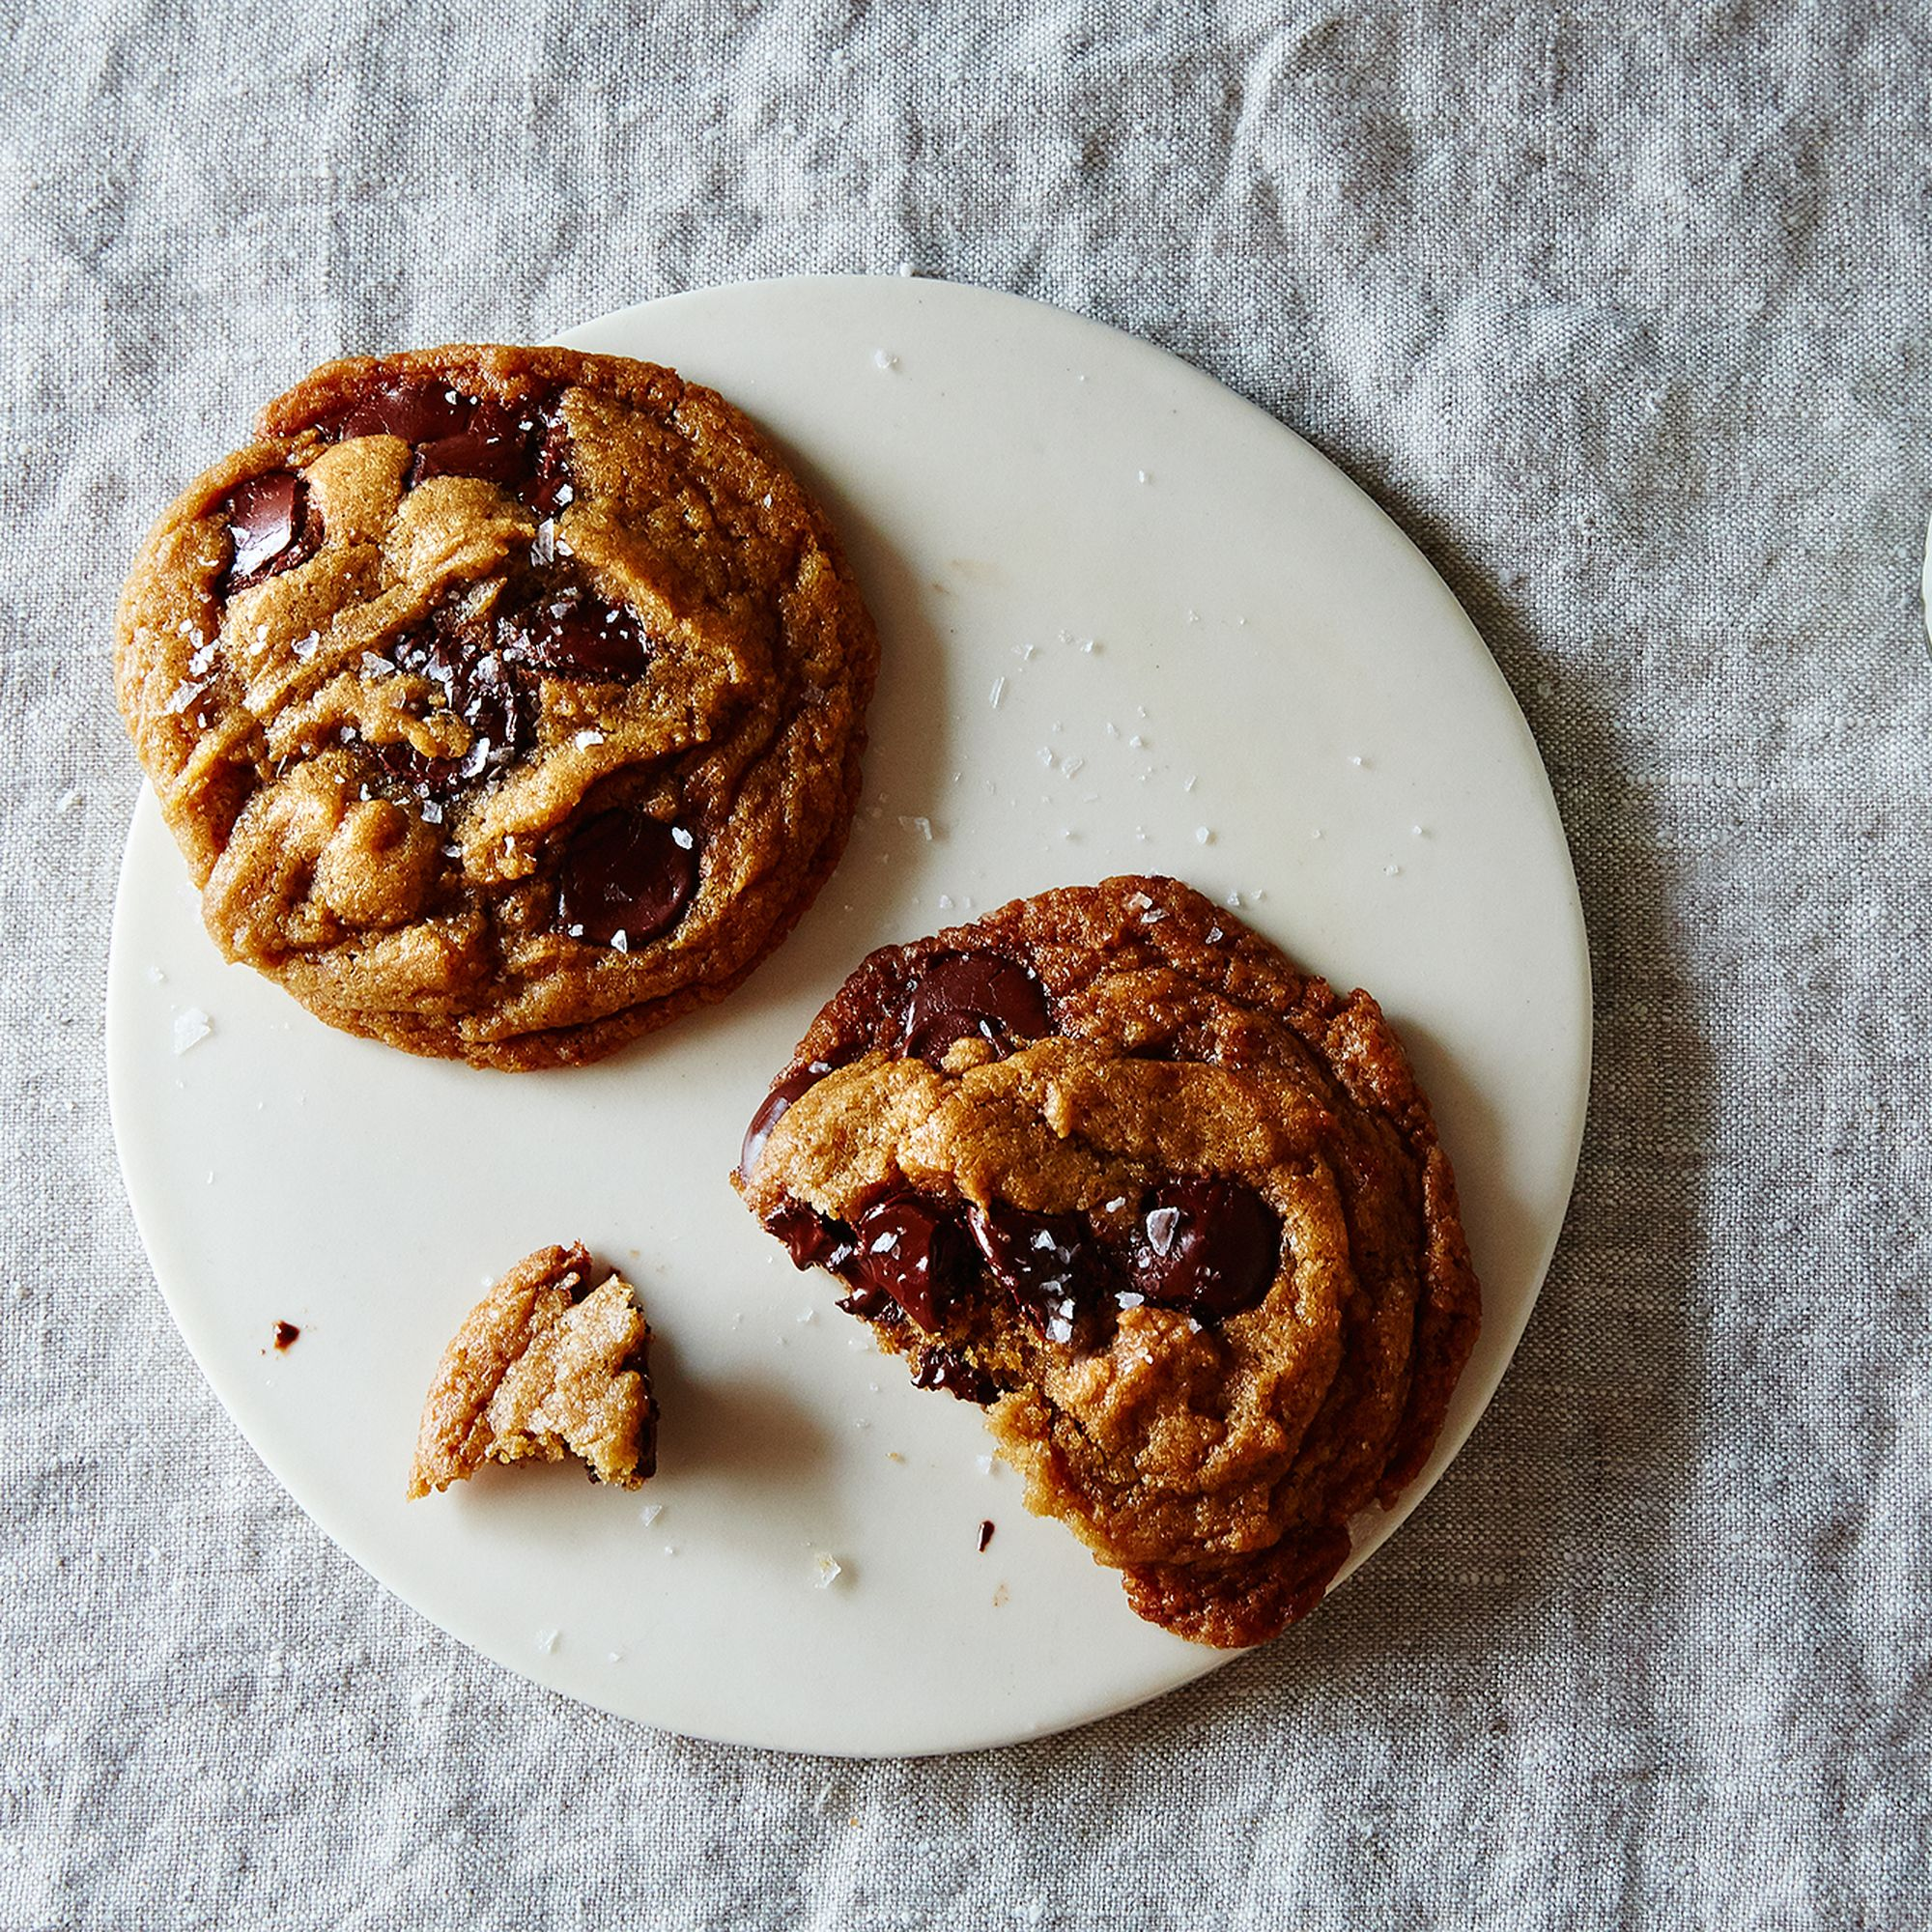 Our 10 Most Popular Chocolate Chip Cookie Recipes of All Time